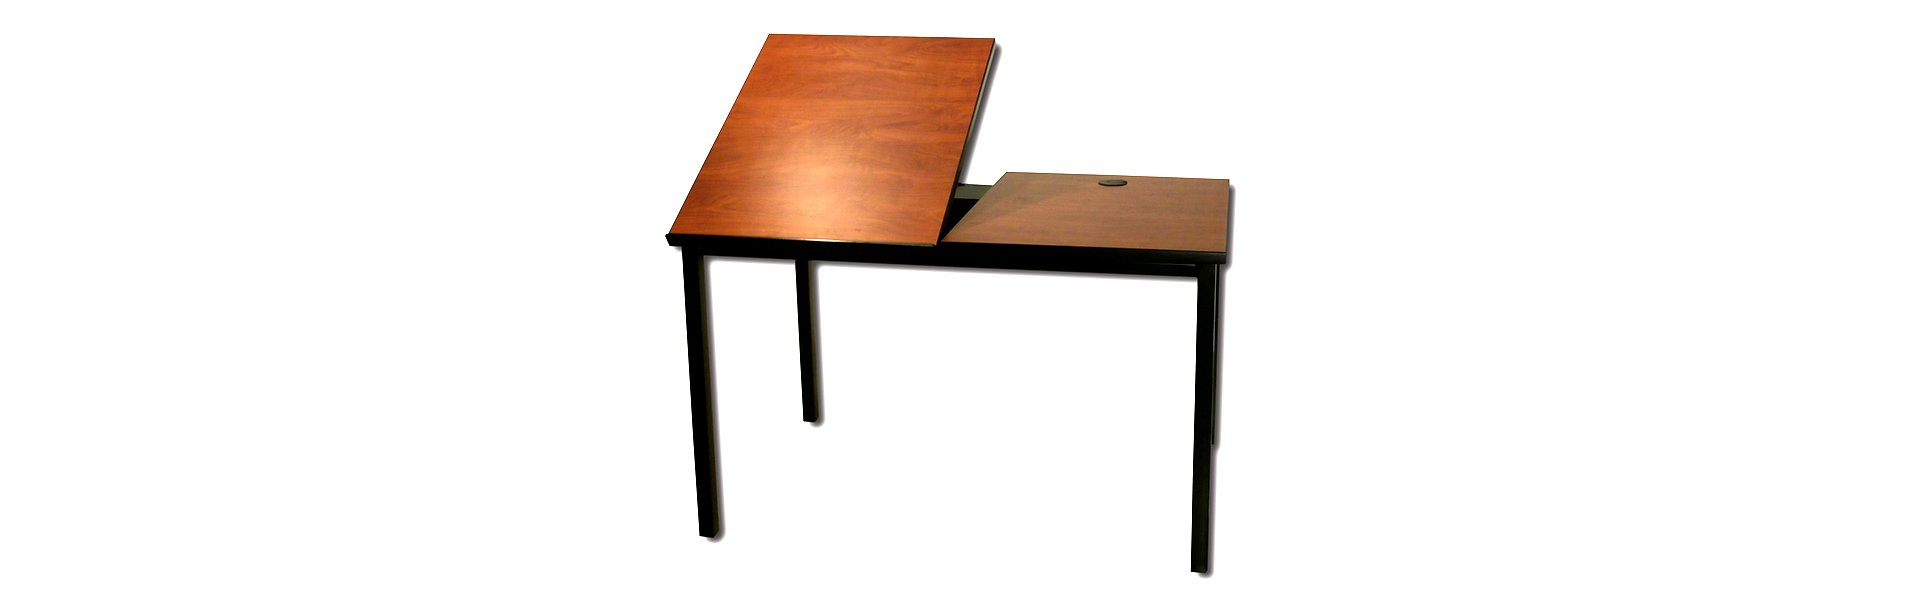 Corilam 661 Series Drafting Tables